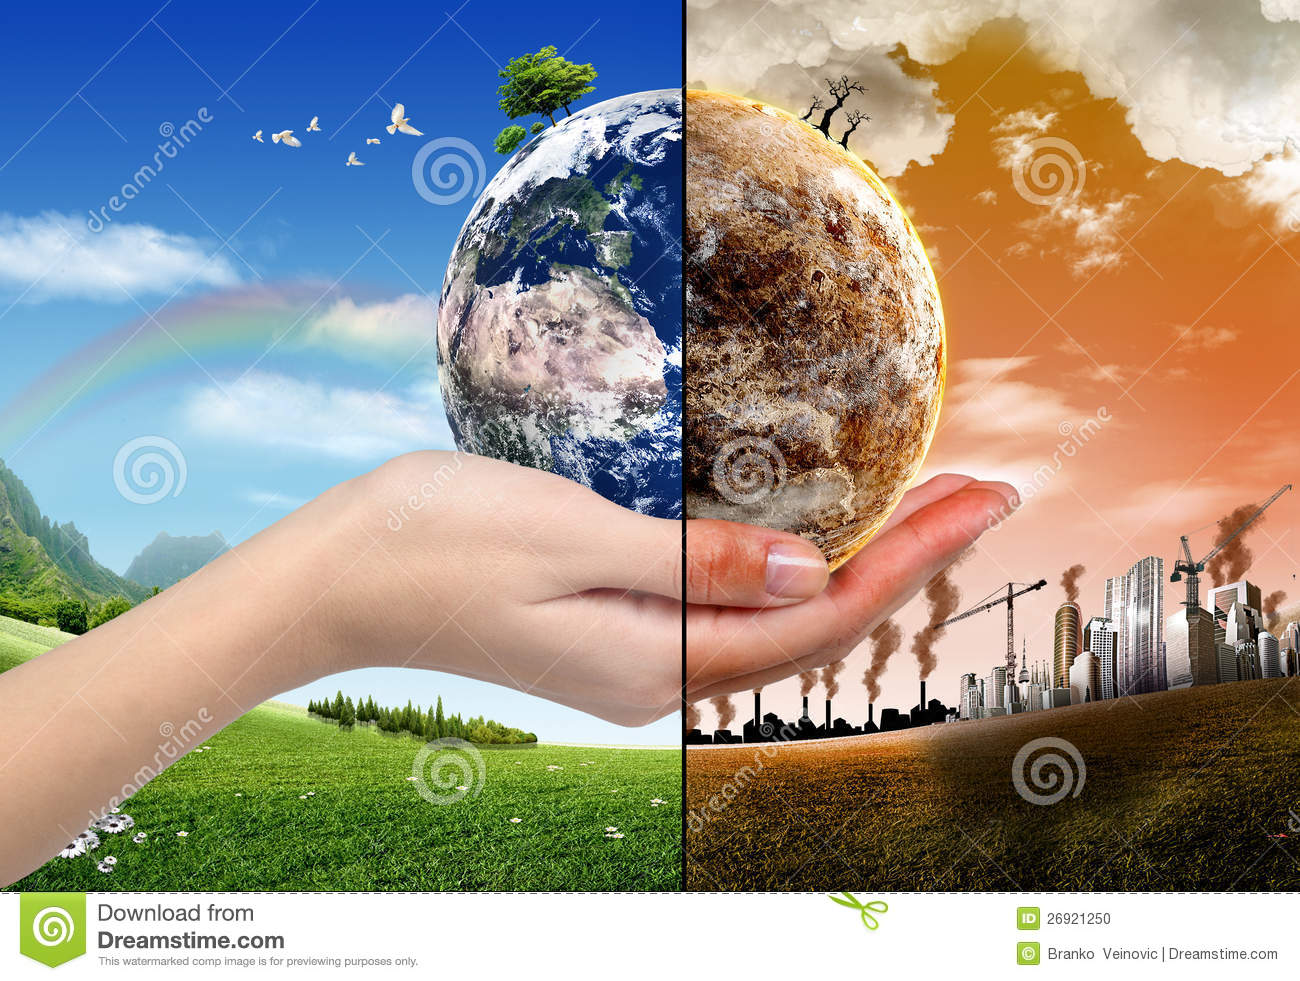 world without pollution essay 1426 words sample essay on environmental pollution the use of horns is made without much though horns pollution only then we can make this world's better.